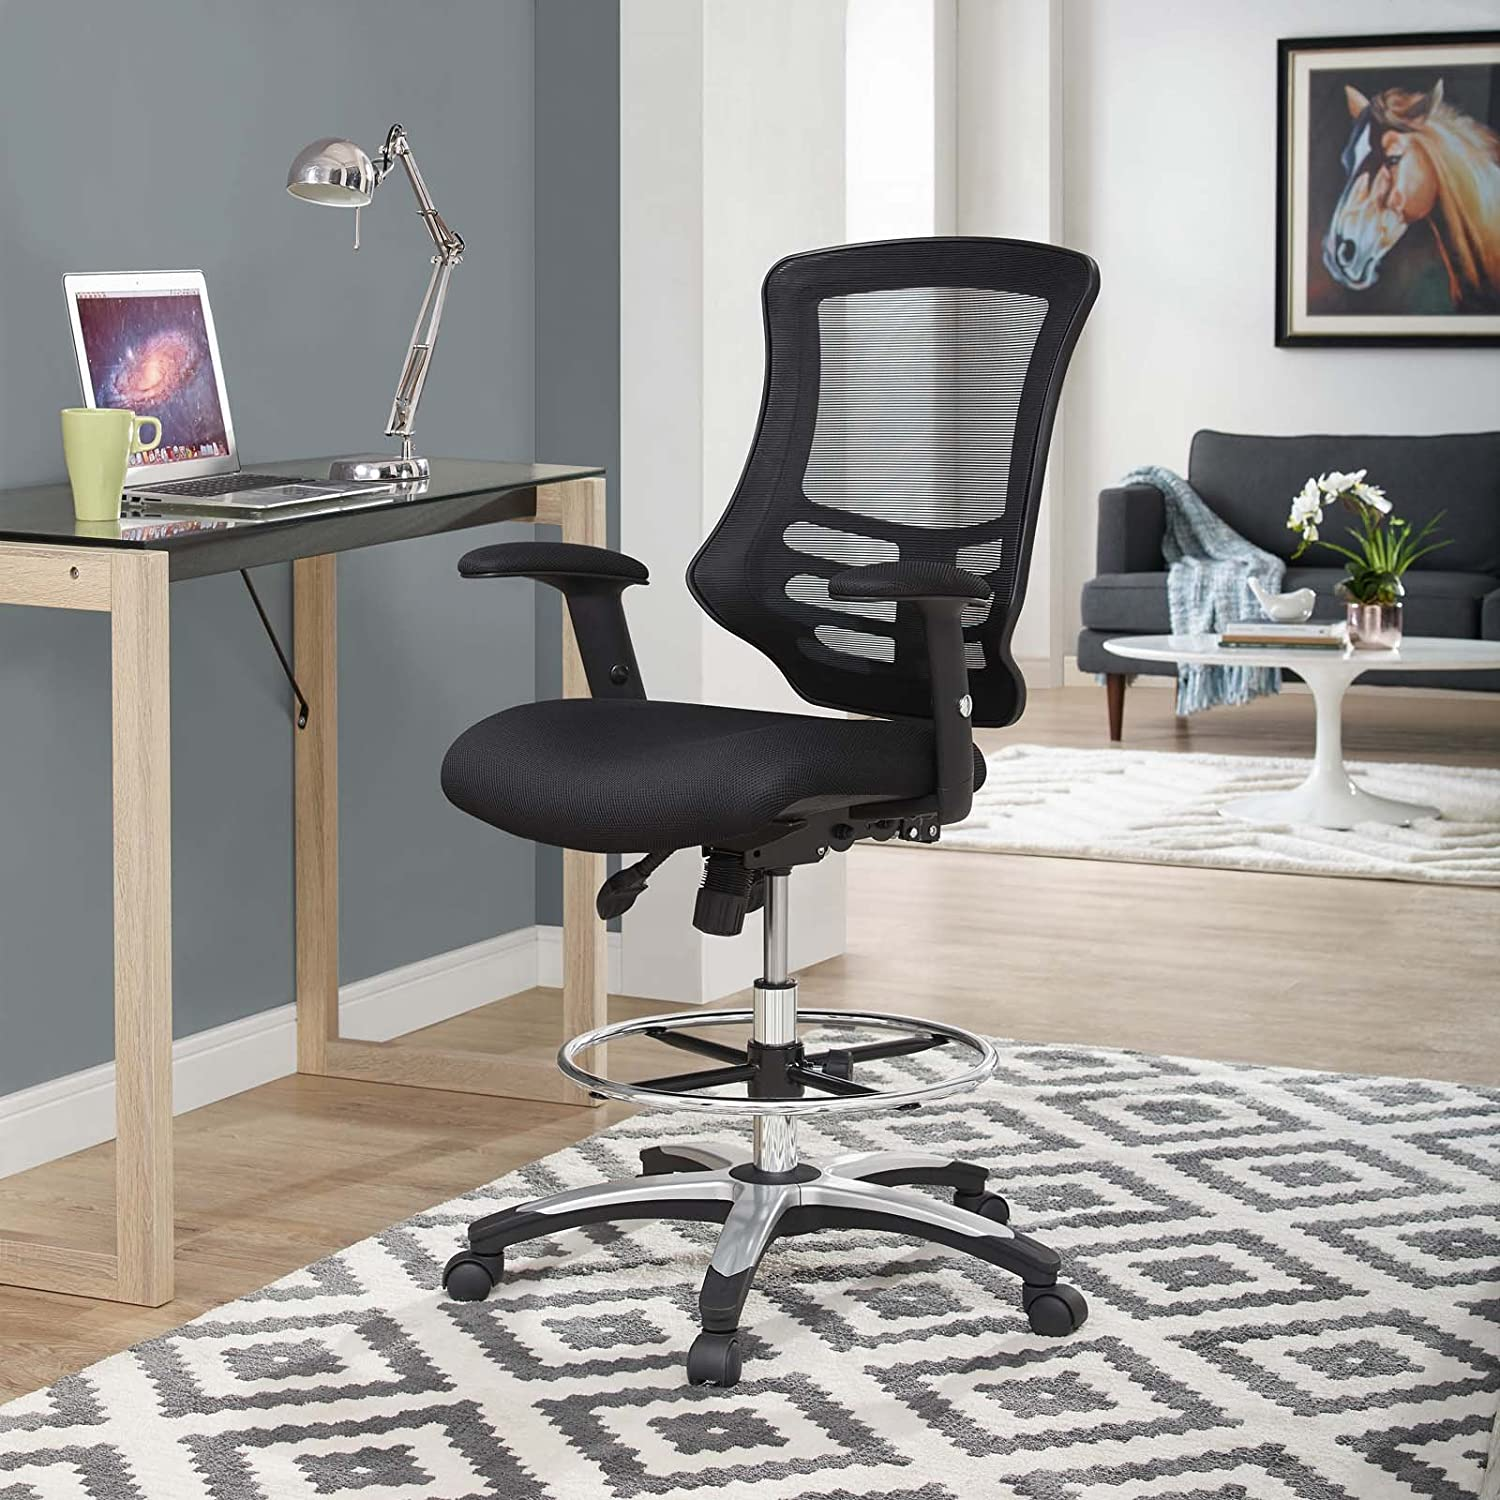 Modway EEI-3043-GRY Calibrate Mesh Drafting Gray-Tall Office Chair for Adjustable Standing Desks Modway Inc.